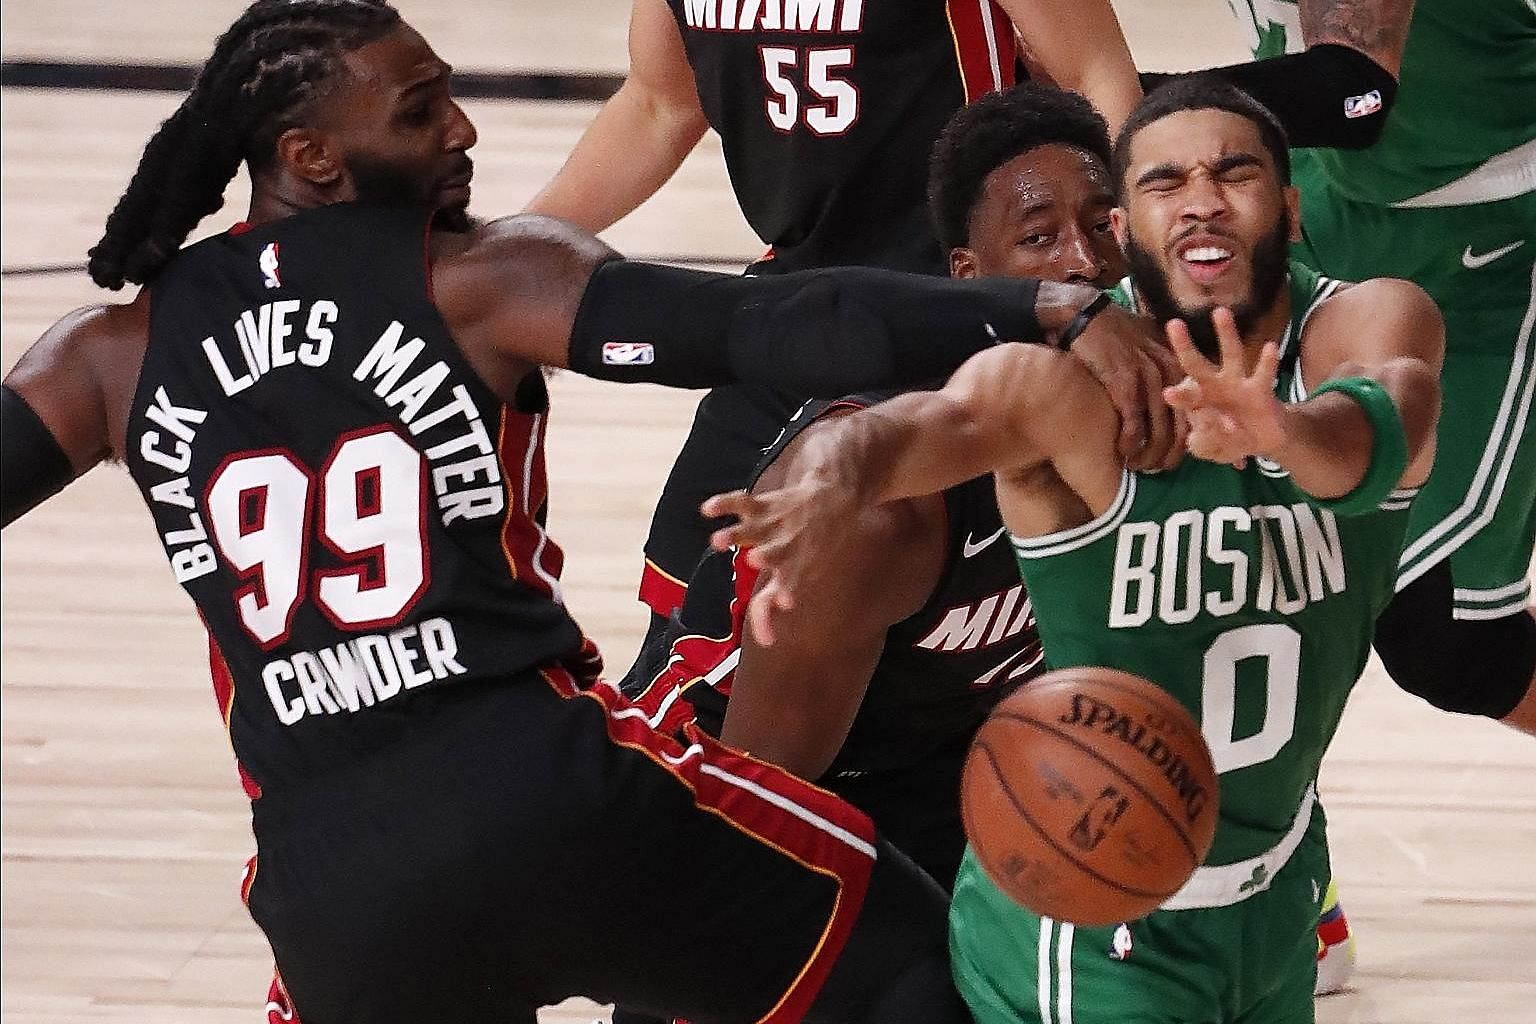 All-Star Jayson Tatum had 25 points, one fewer than the team-high tally recorded by fellow Boston forward Jaylen Brown as the Celtics beat the Miami Heat 117-106 to reduce the deficit in the Eastern Conference Finals to 2-1. PHOTO: EPA-EFE